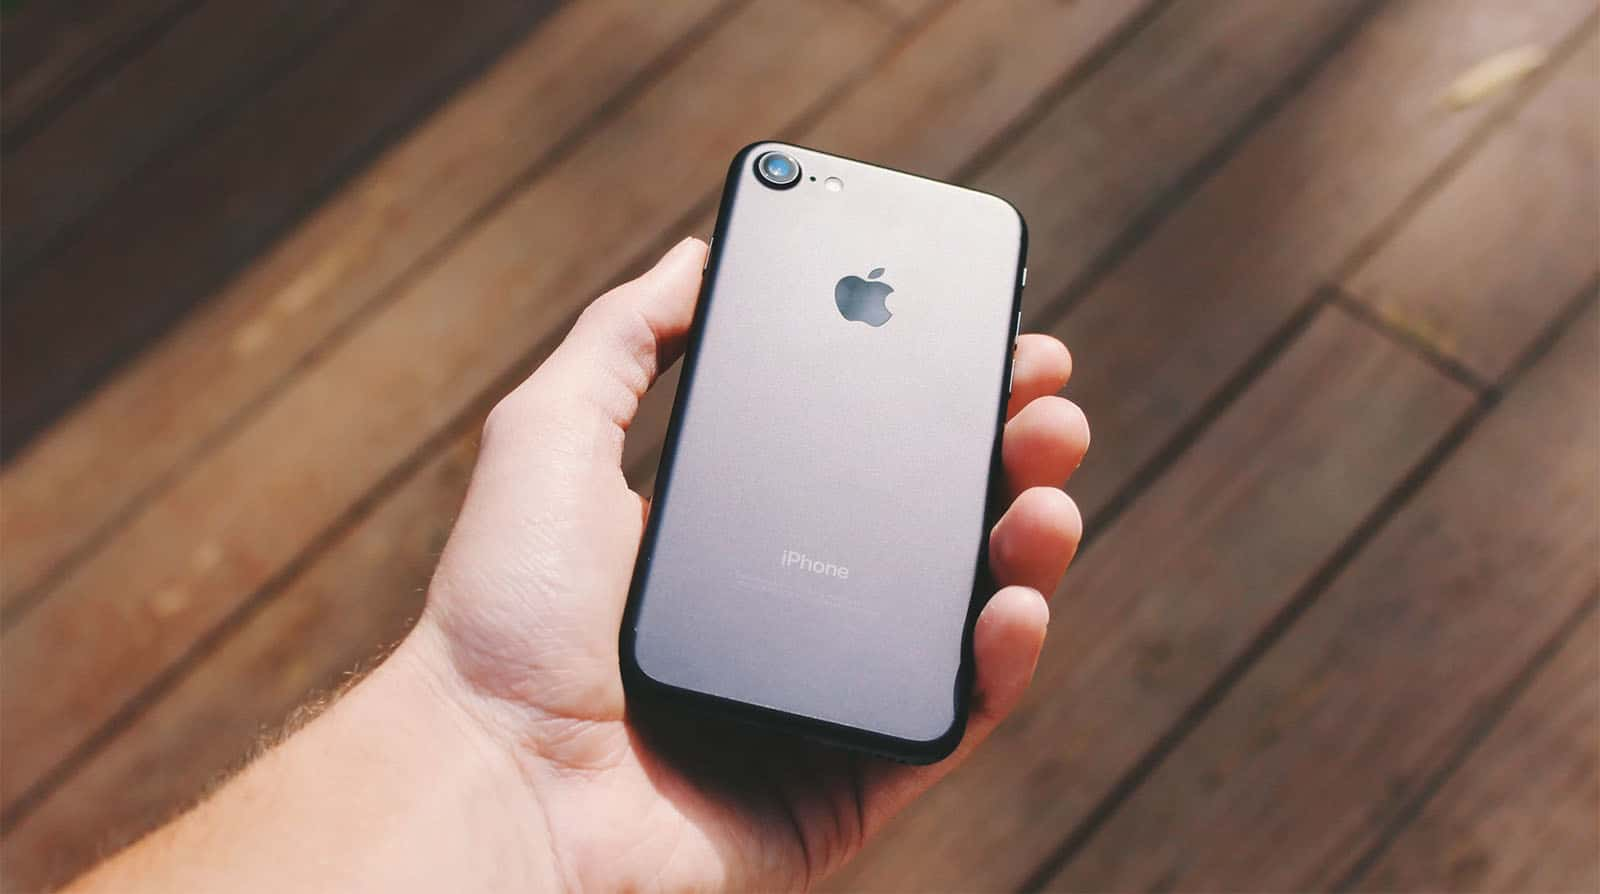 Apple iPhone 9 or iPhone SE